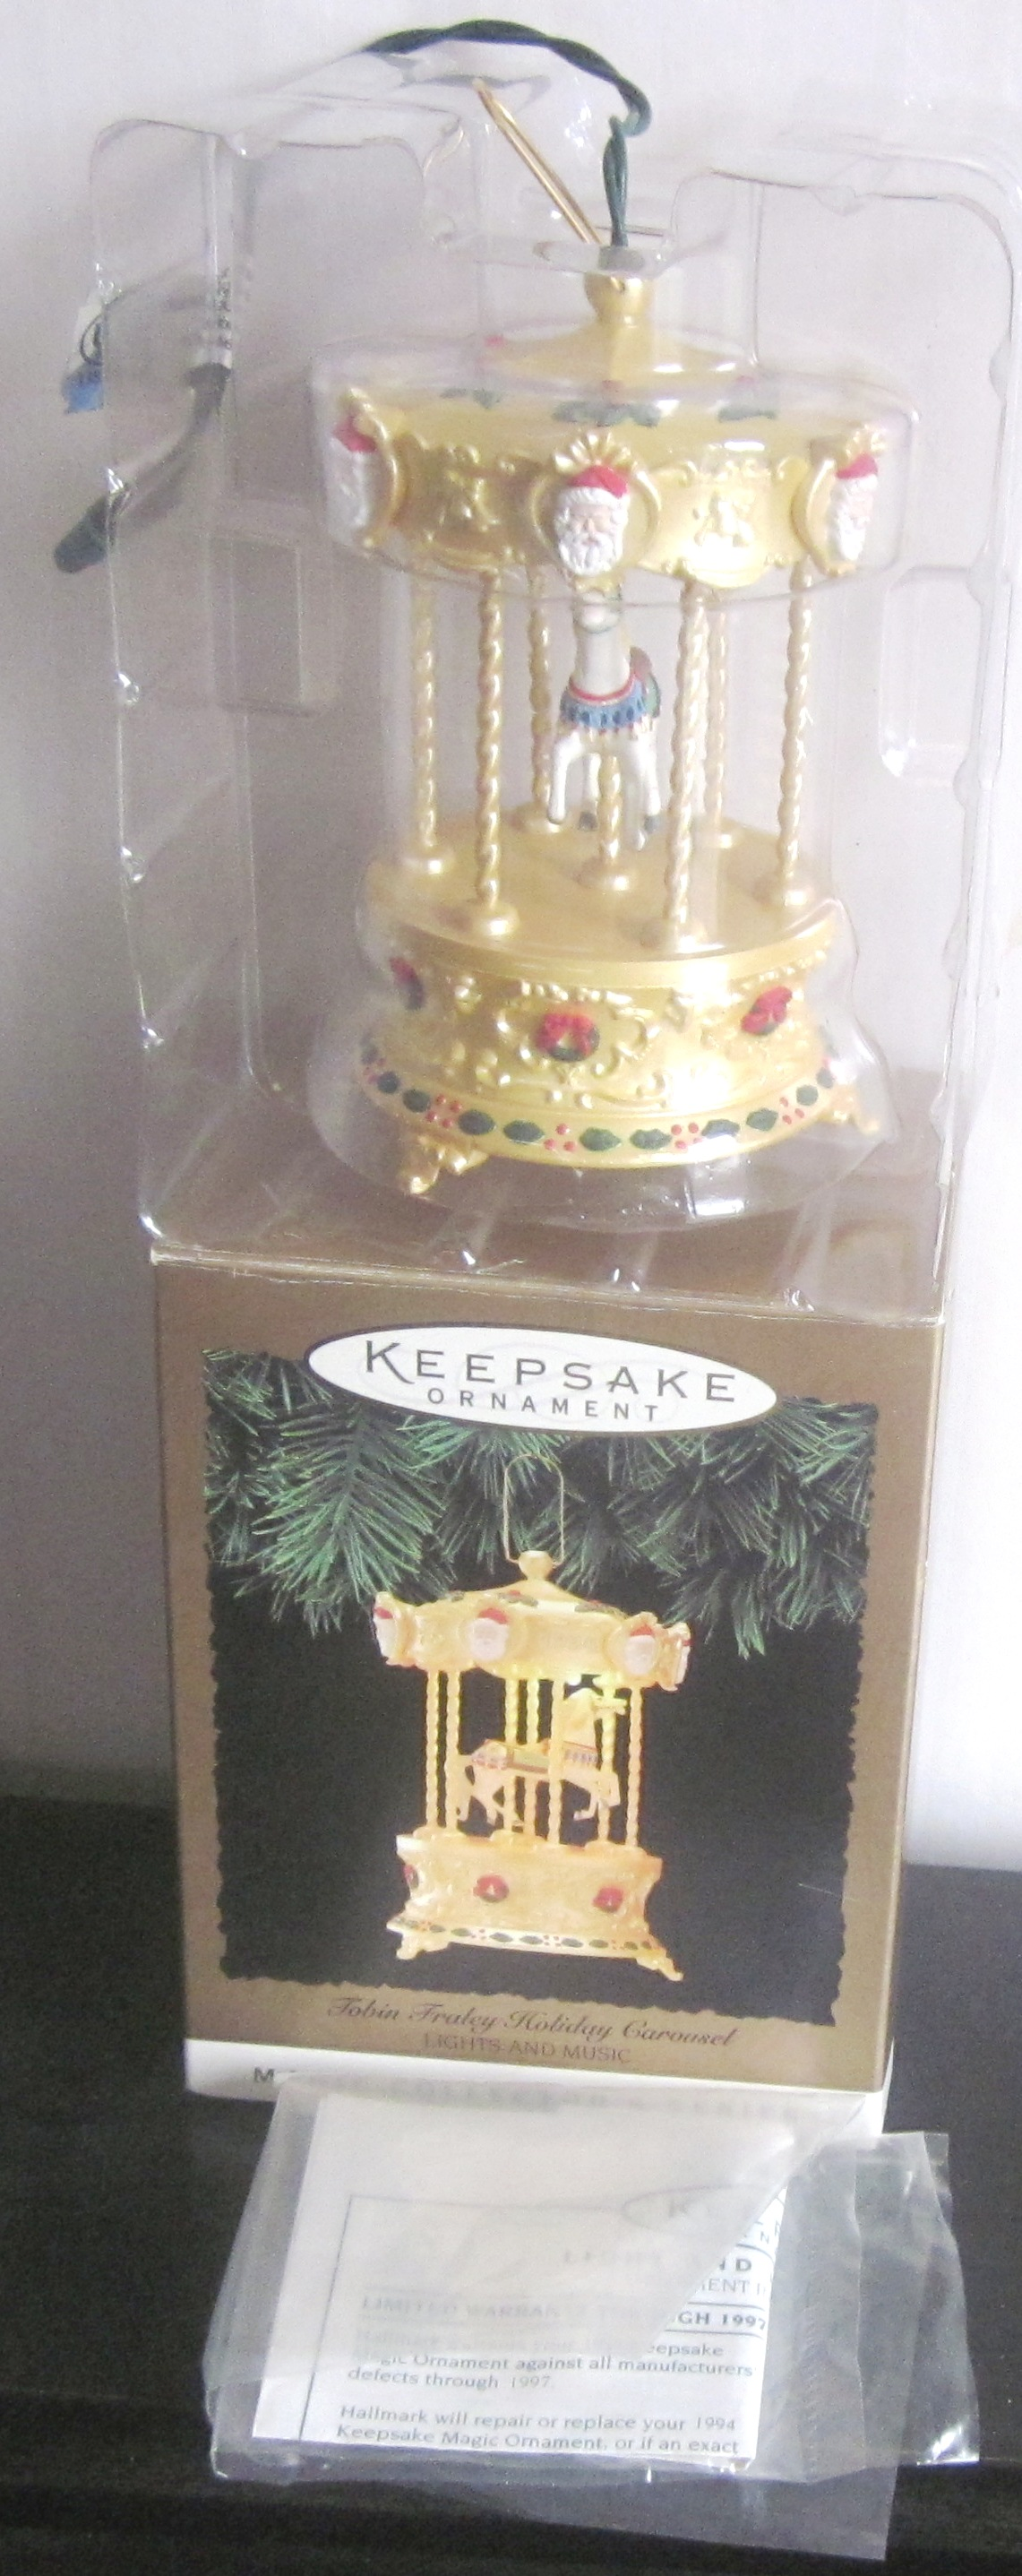 Hallmark Keepsake Ornament Tobin Fraley Holiday Carousel